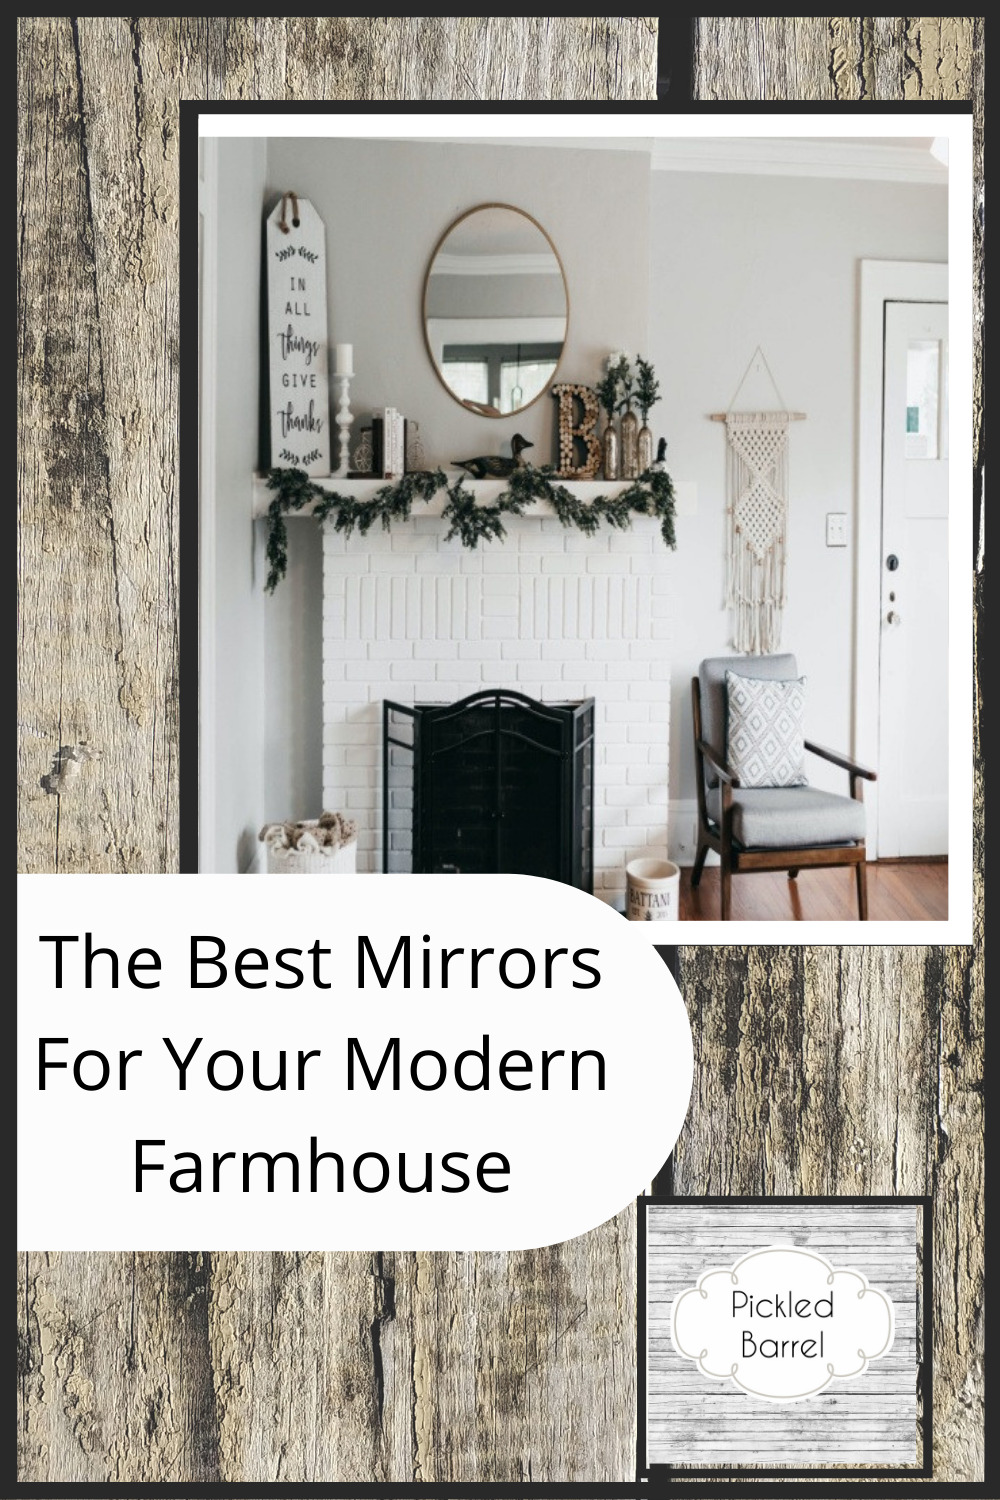 Pickledbarrel.com is the ultimate resource for all things rustic and farmhouse! Make sure every room of your house is absolutely perfect! Perfect your home with these amazing farmhouse mirror ideas!